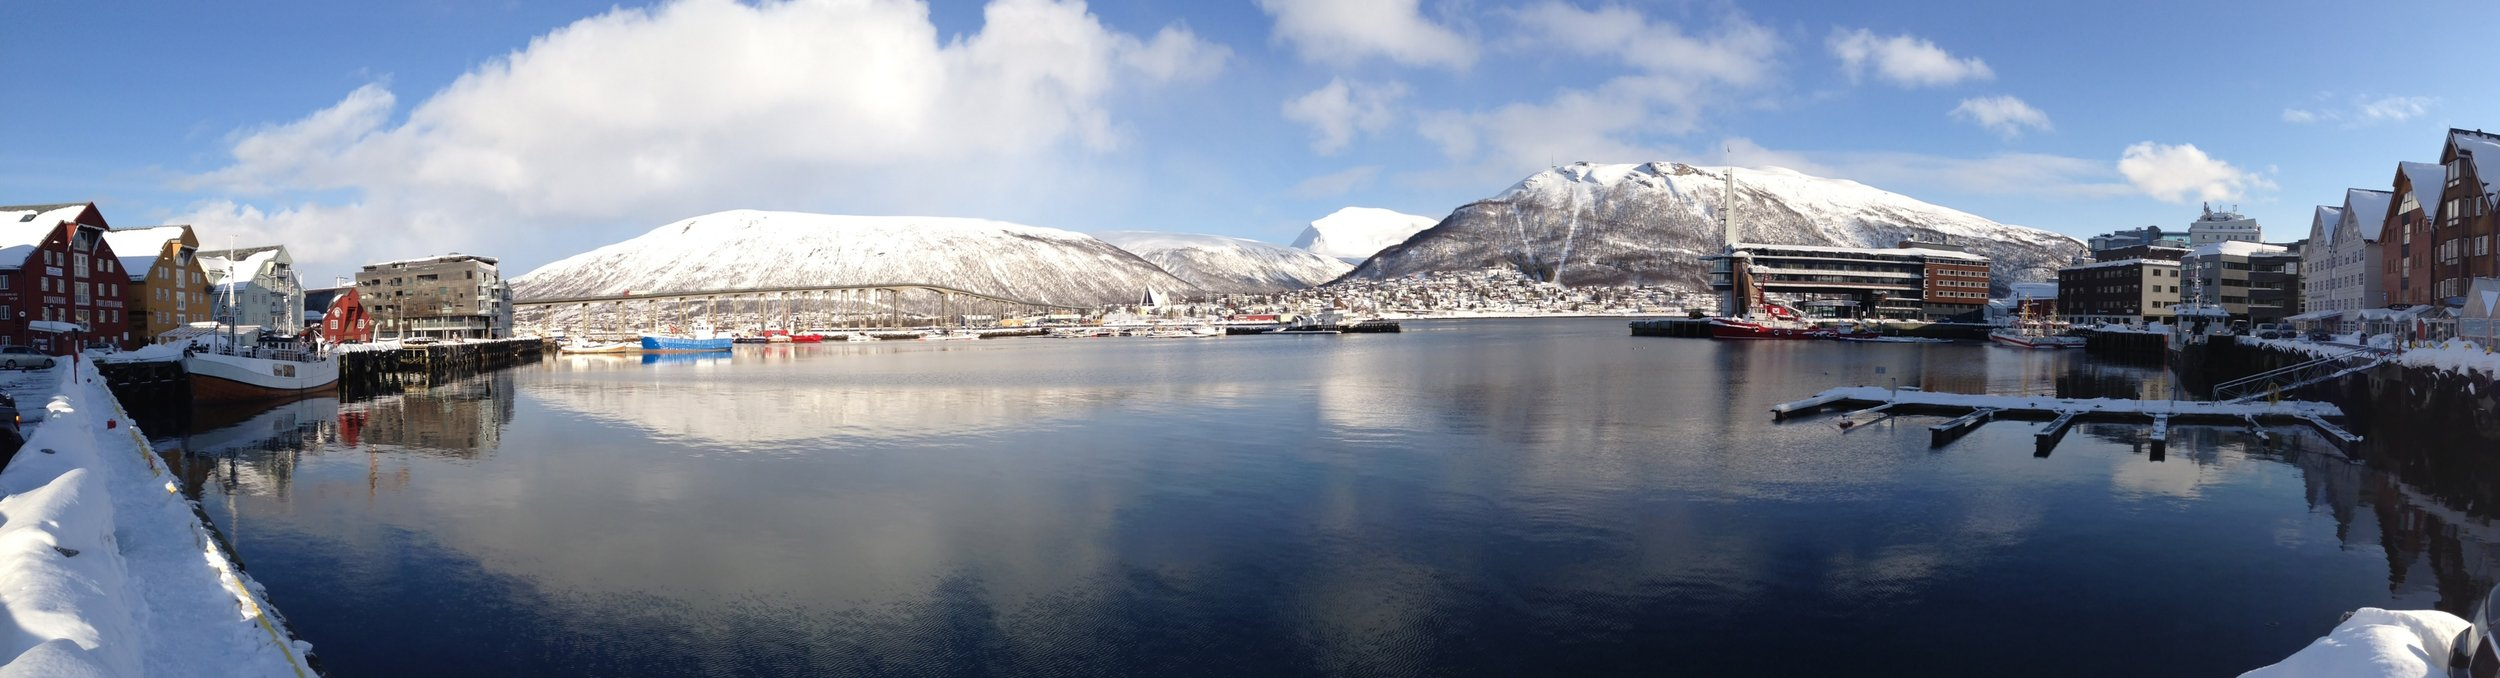 Tromso harbor way above the Arctic circle.